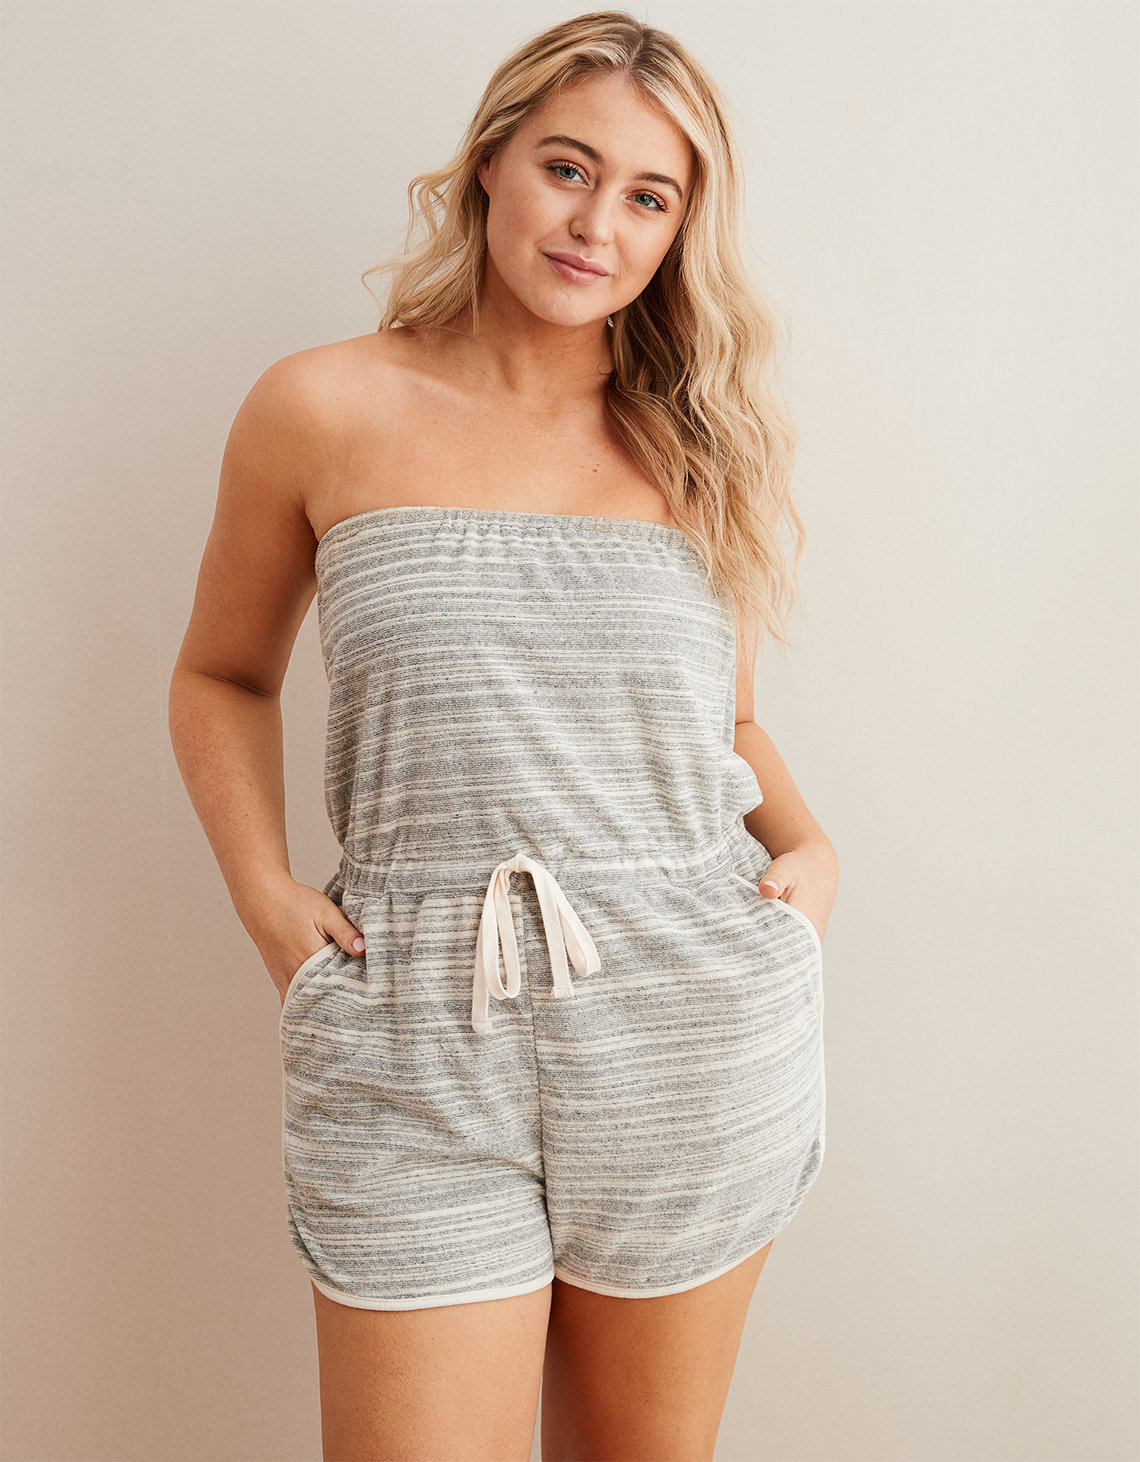 5741a7277d7a Aerie Terry Romper. Placeholder image. Product Image